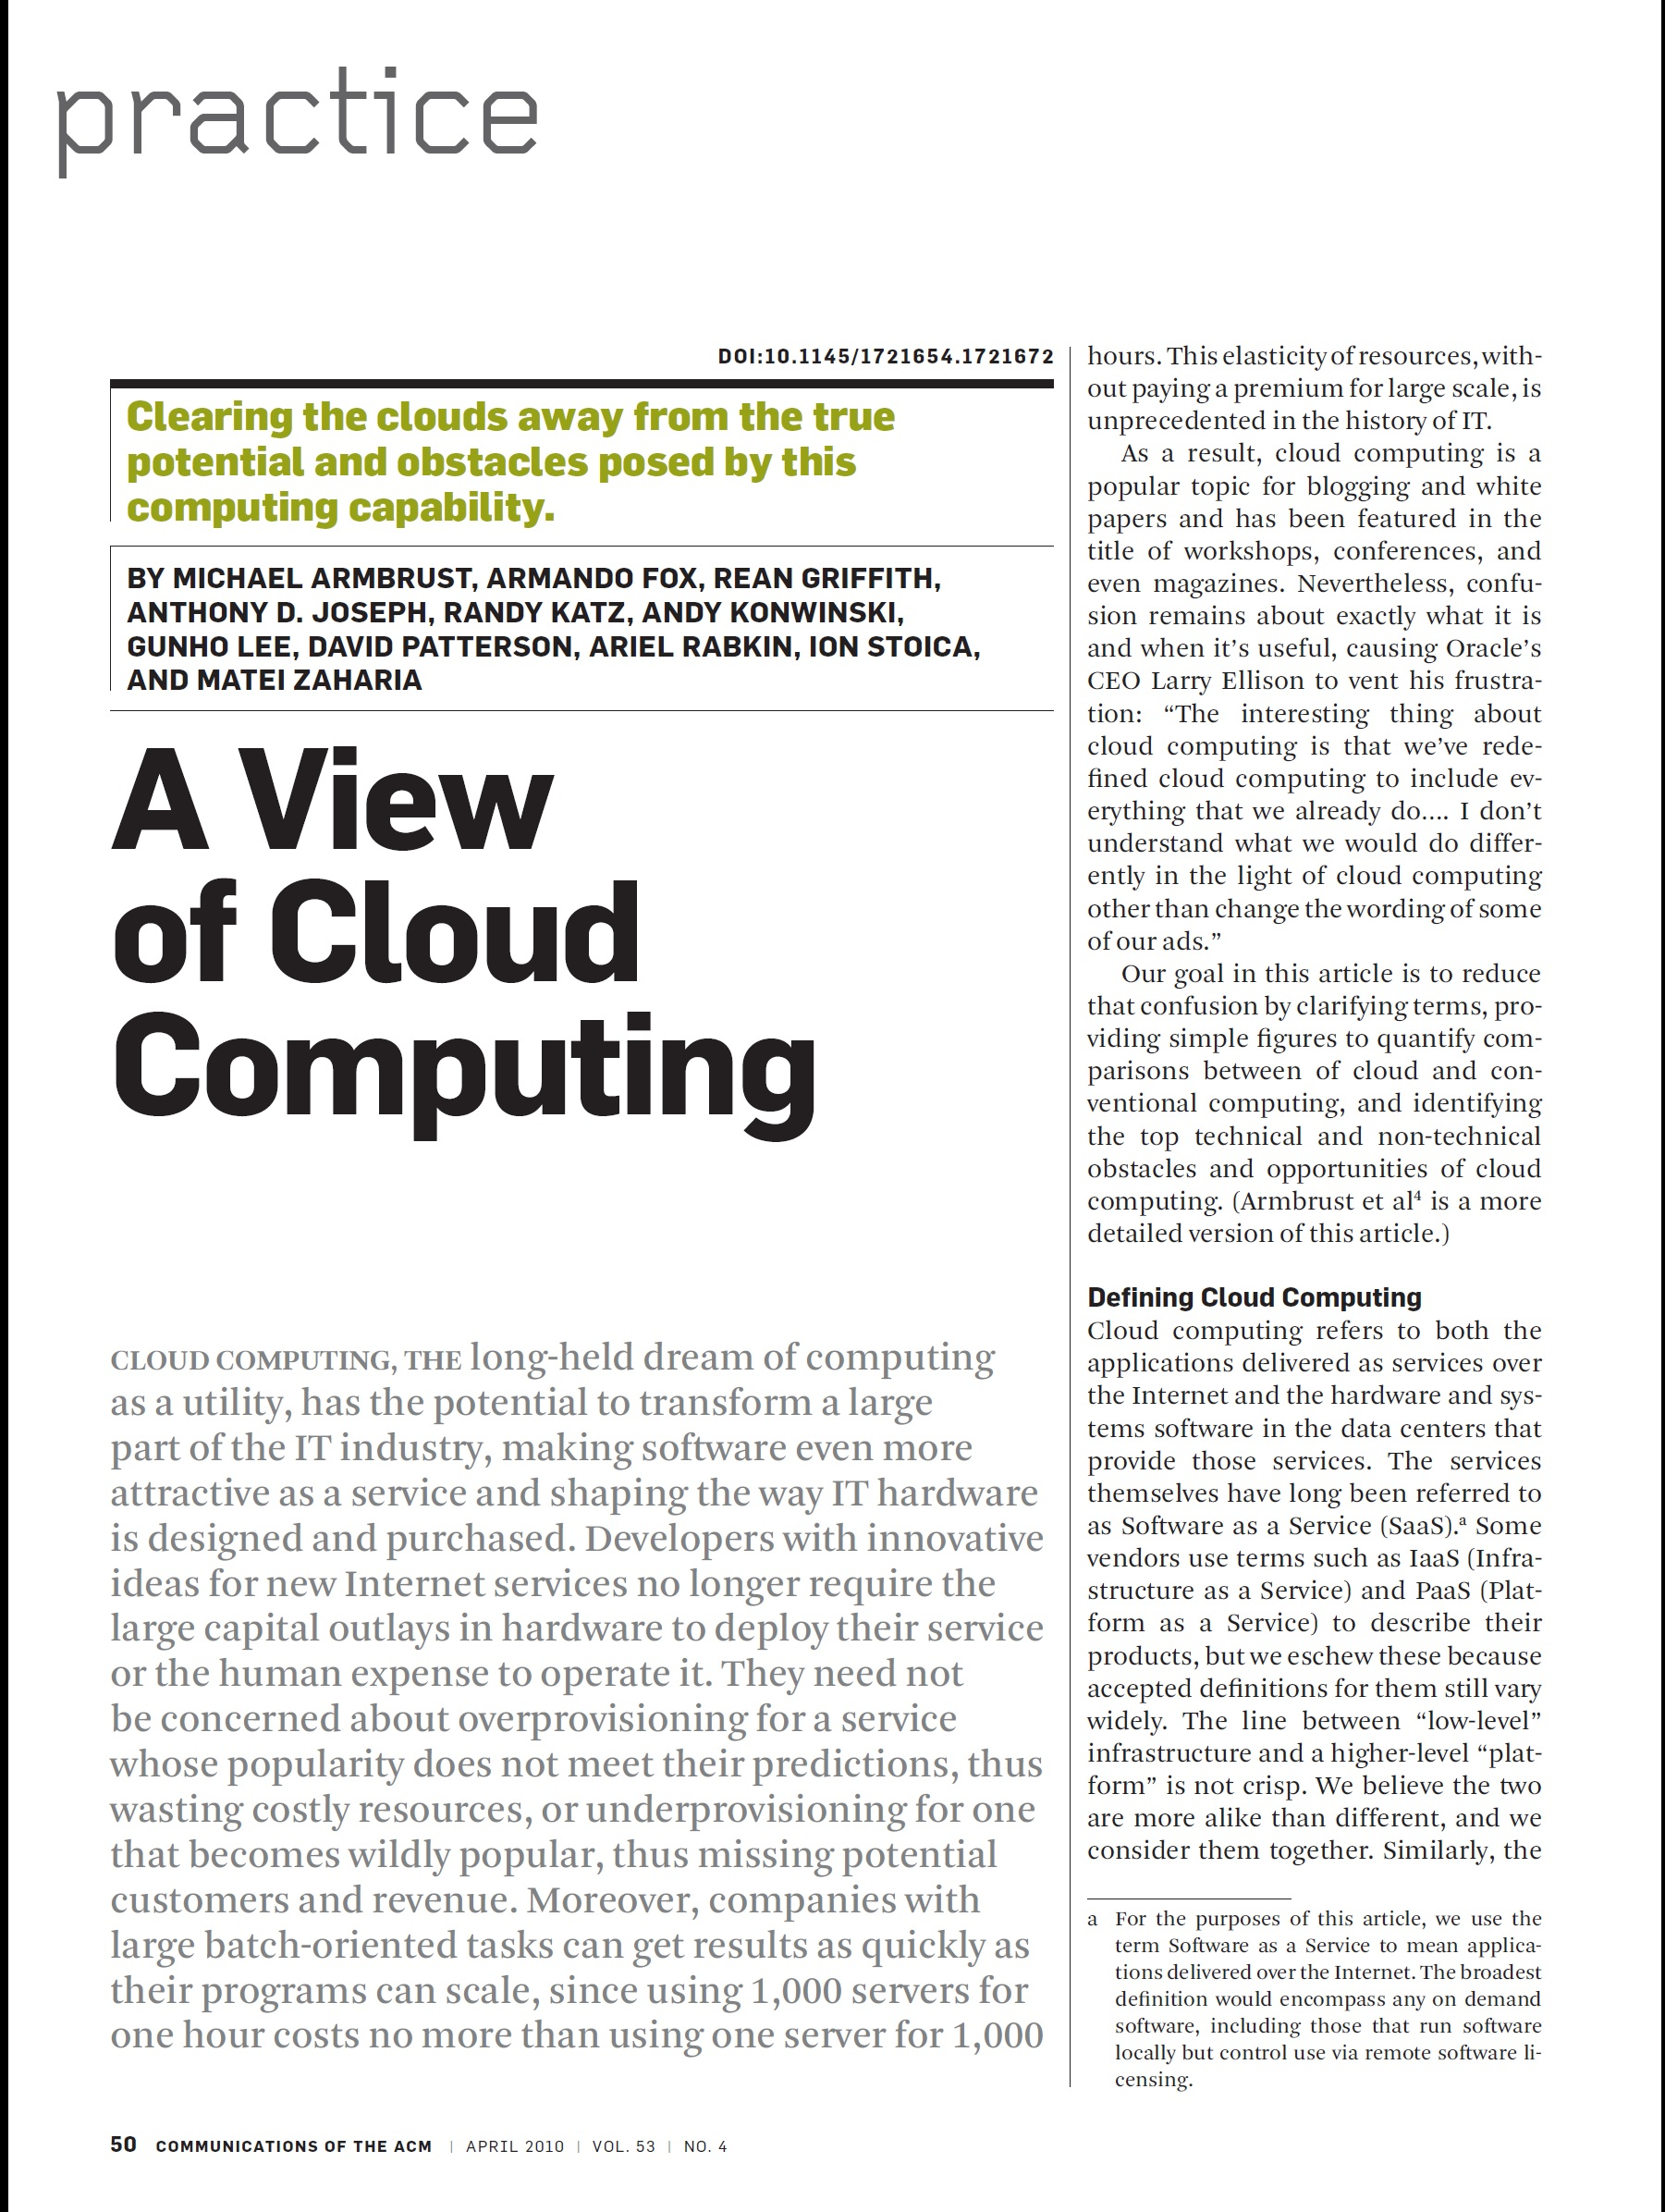 A View of Cloud Computing, ACM, 2010